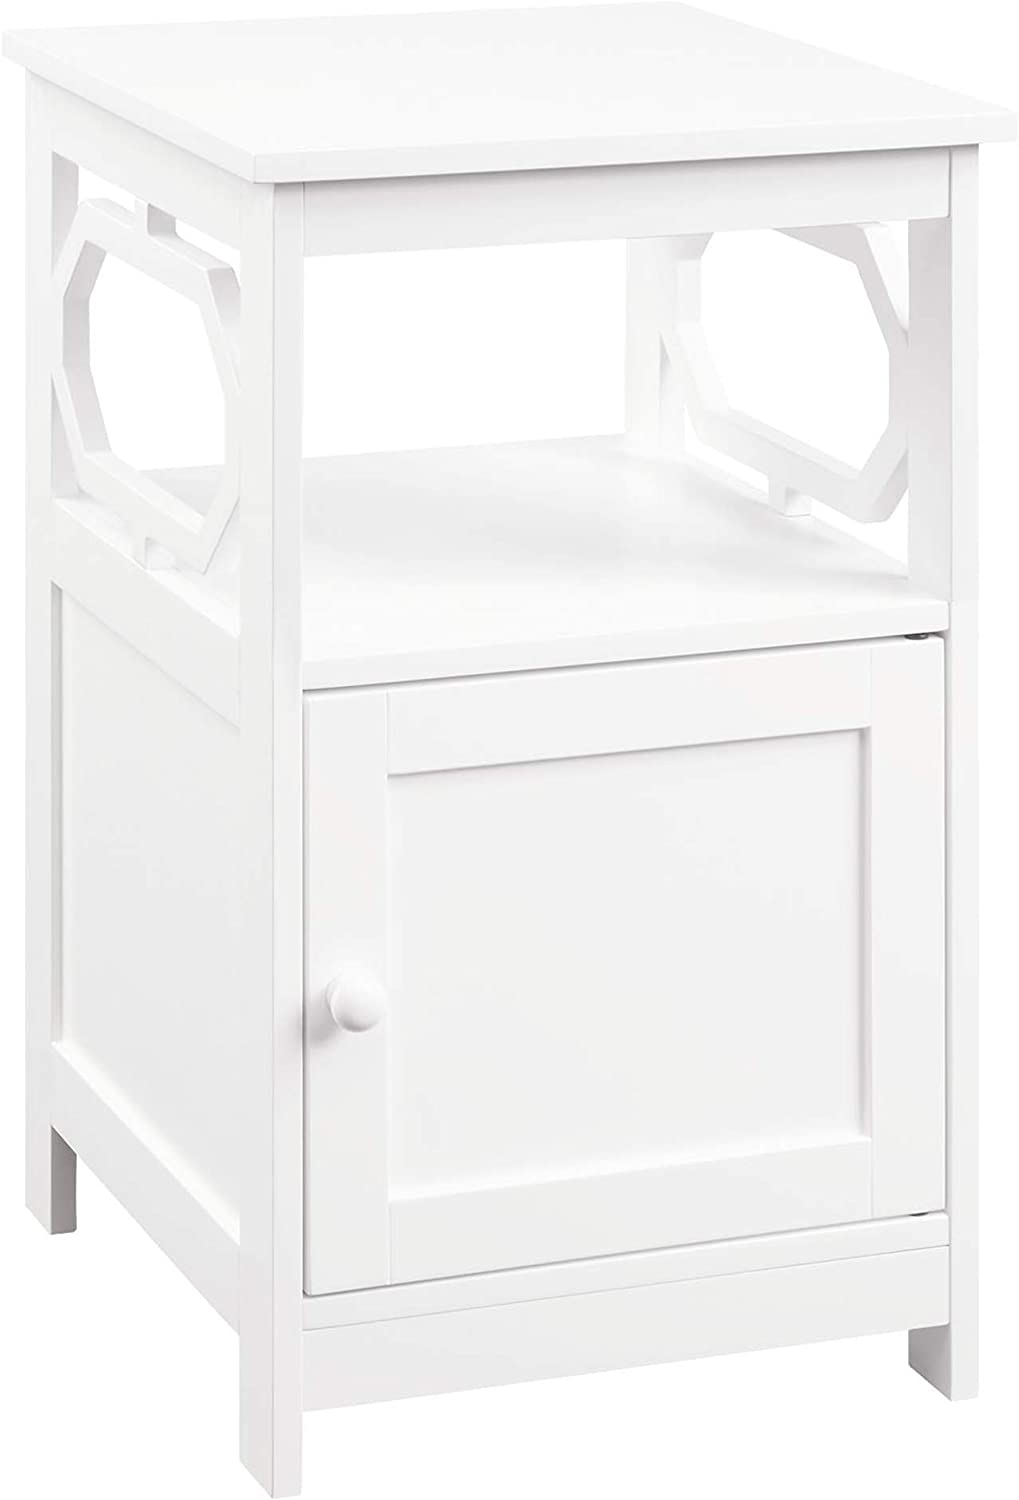 Convenience Concepts Omega End Table with Cabinet, White